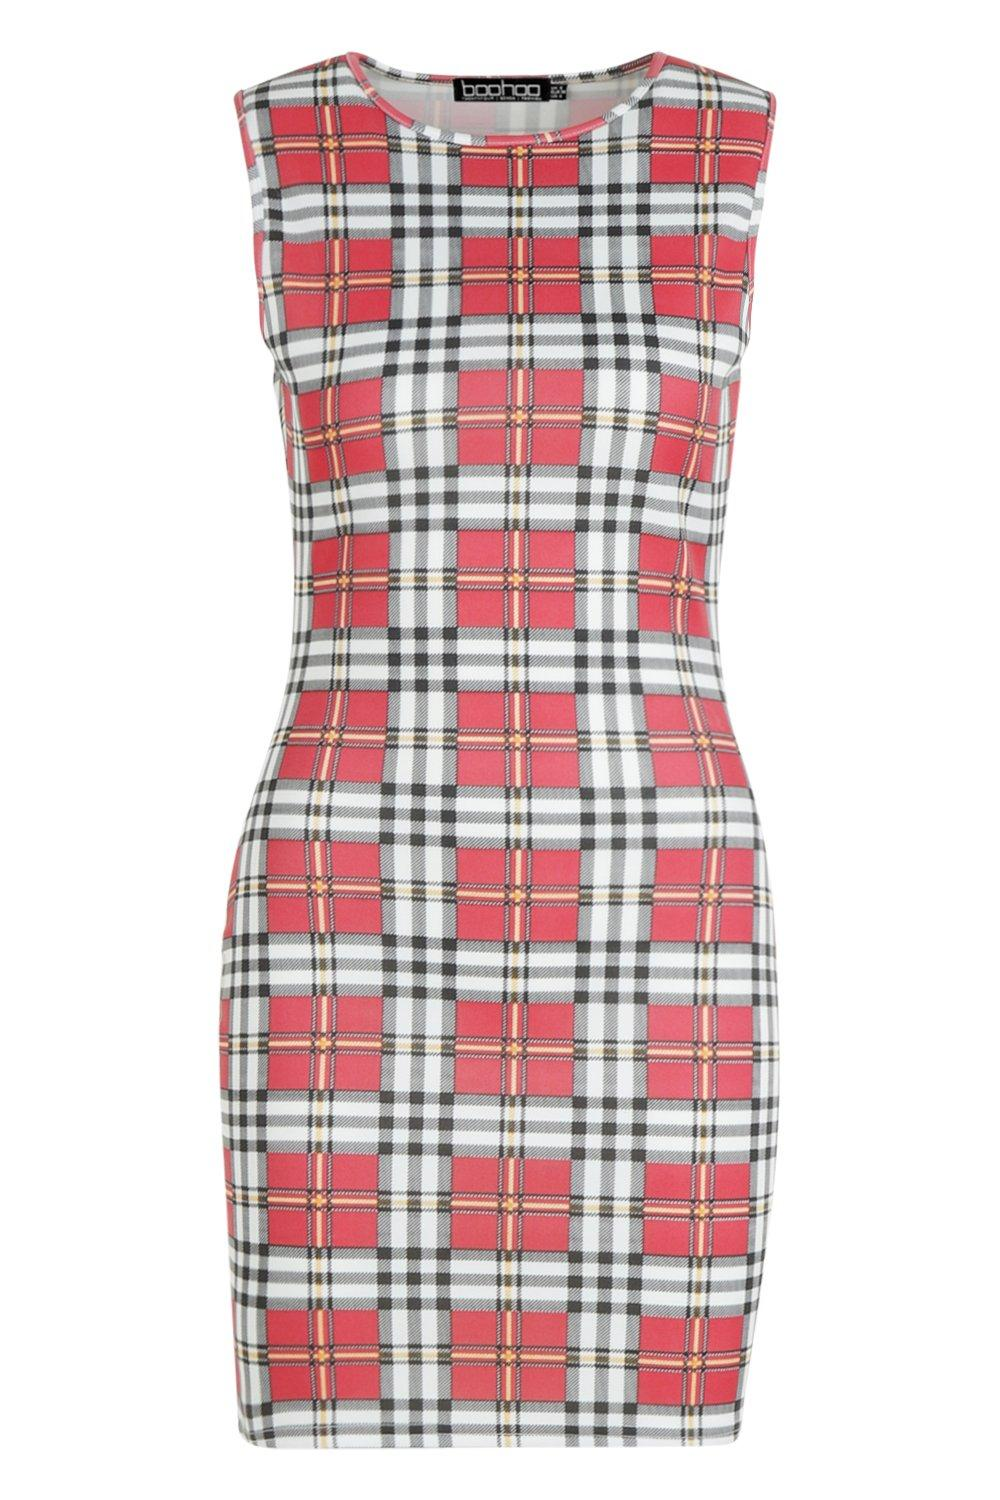 Check Dress Check Check Mini Mini Tartan Dress Dress Tartan Tartan Check Mini Tartan Mini wUqxwF6pS